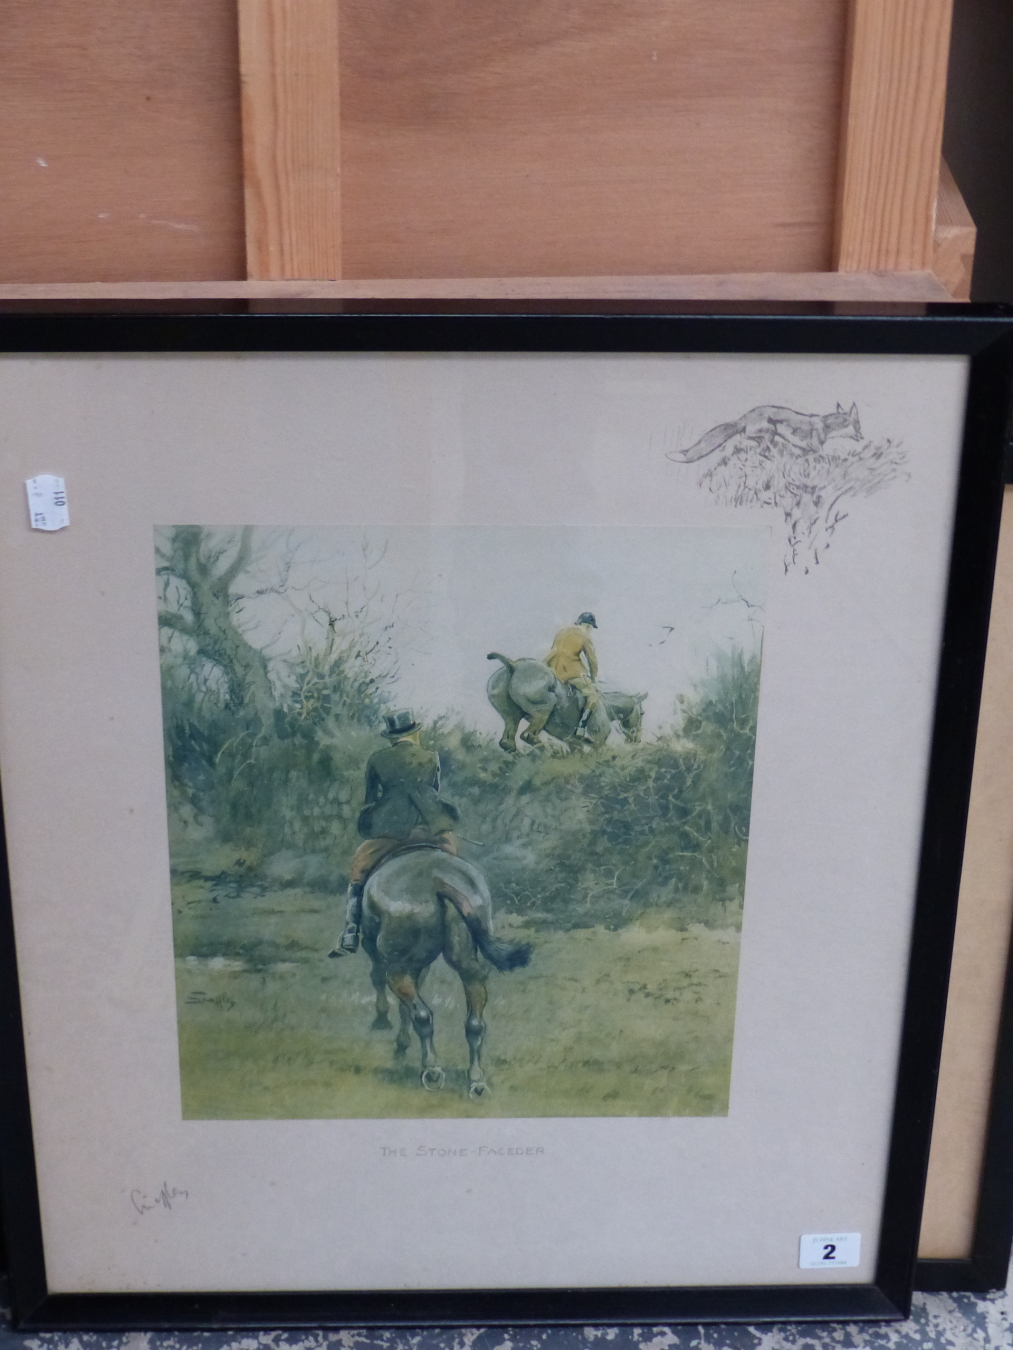 SNAFFLES, CHARLES JOHNSON PAYNE (1884-1967) A PENCIL SIGNED COLOUR PRINT. THE STONE-FACEDER, 51 x - Image 2 of 3